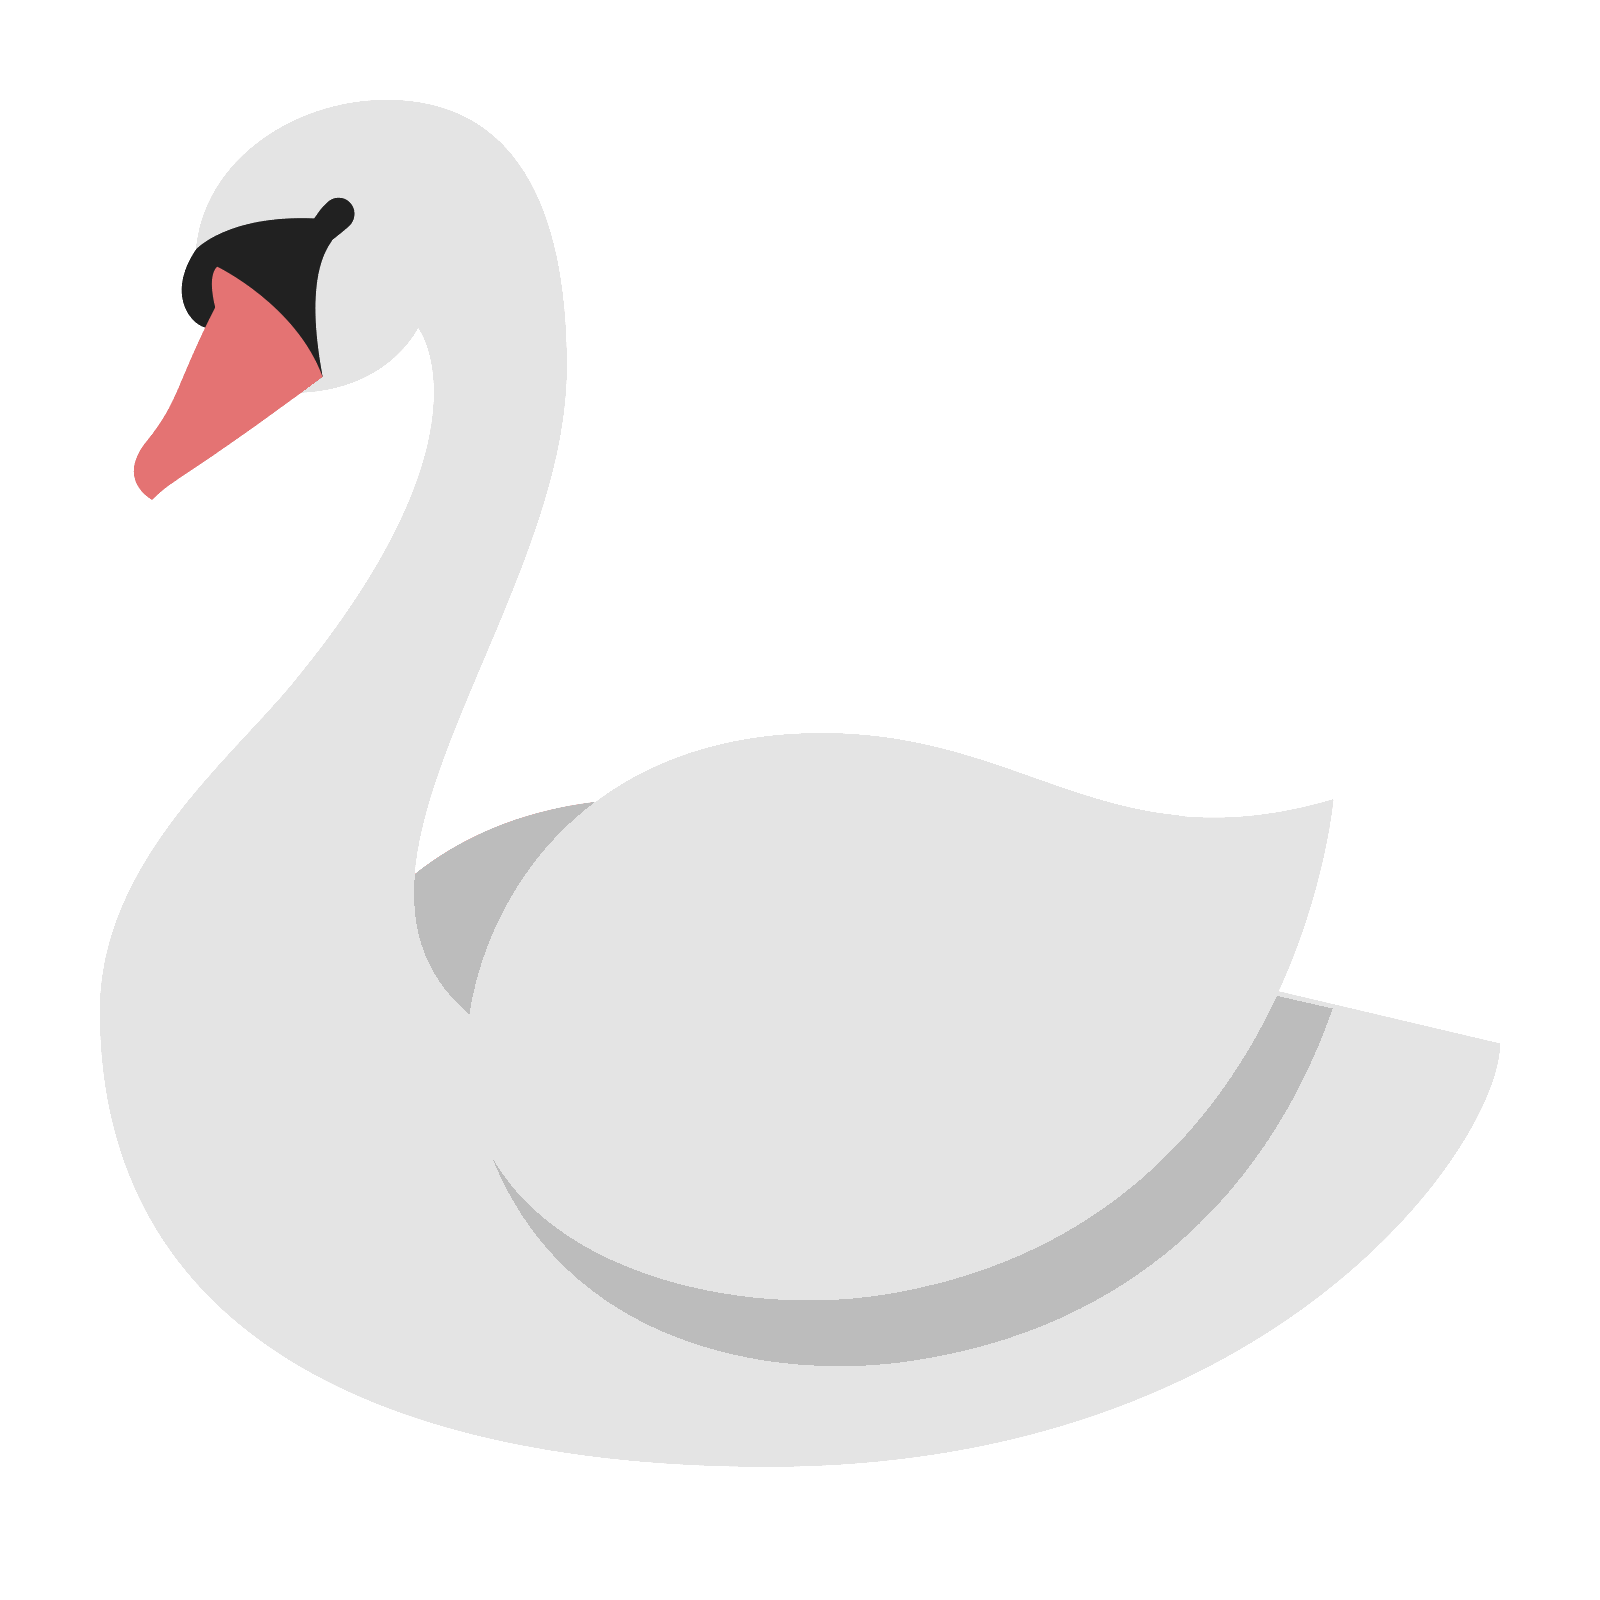 Fur vector swan feather. Icon free download png